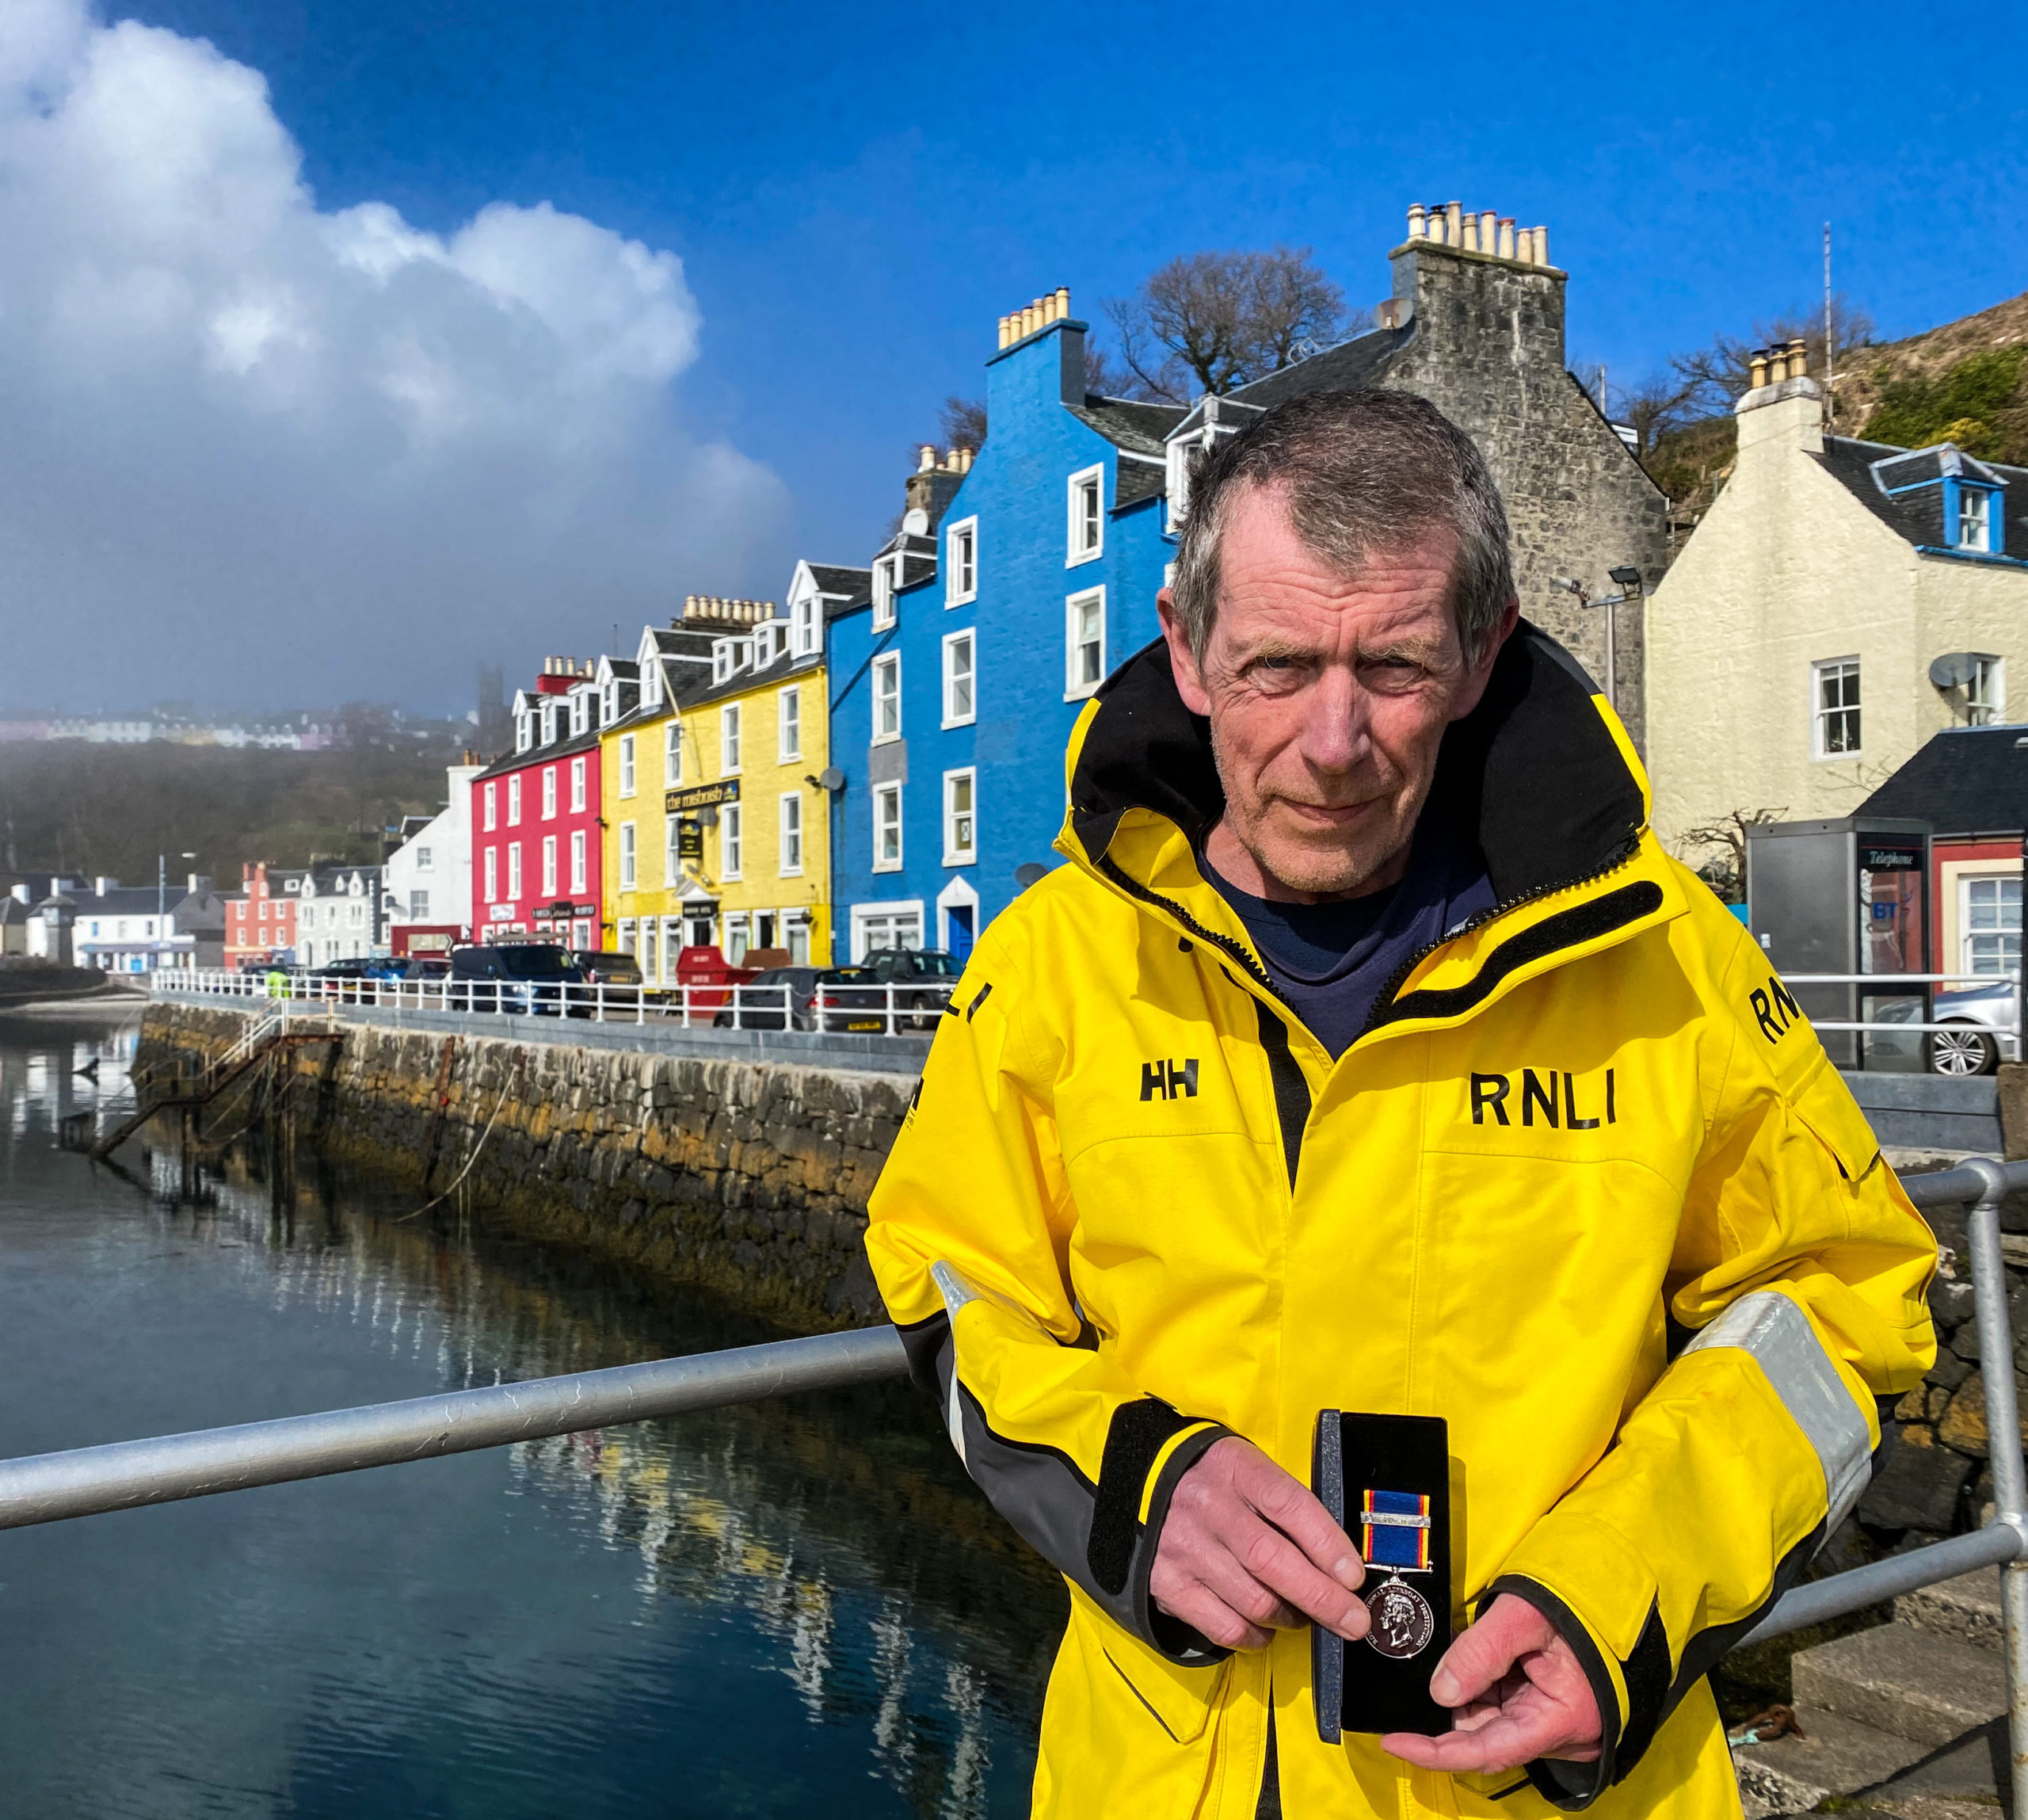 Long-service medal for lifeboat man Creon   The Oban Times